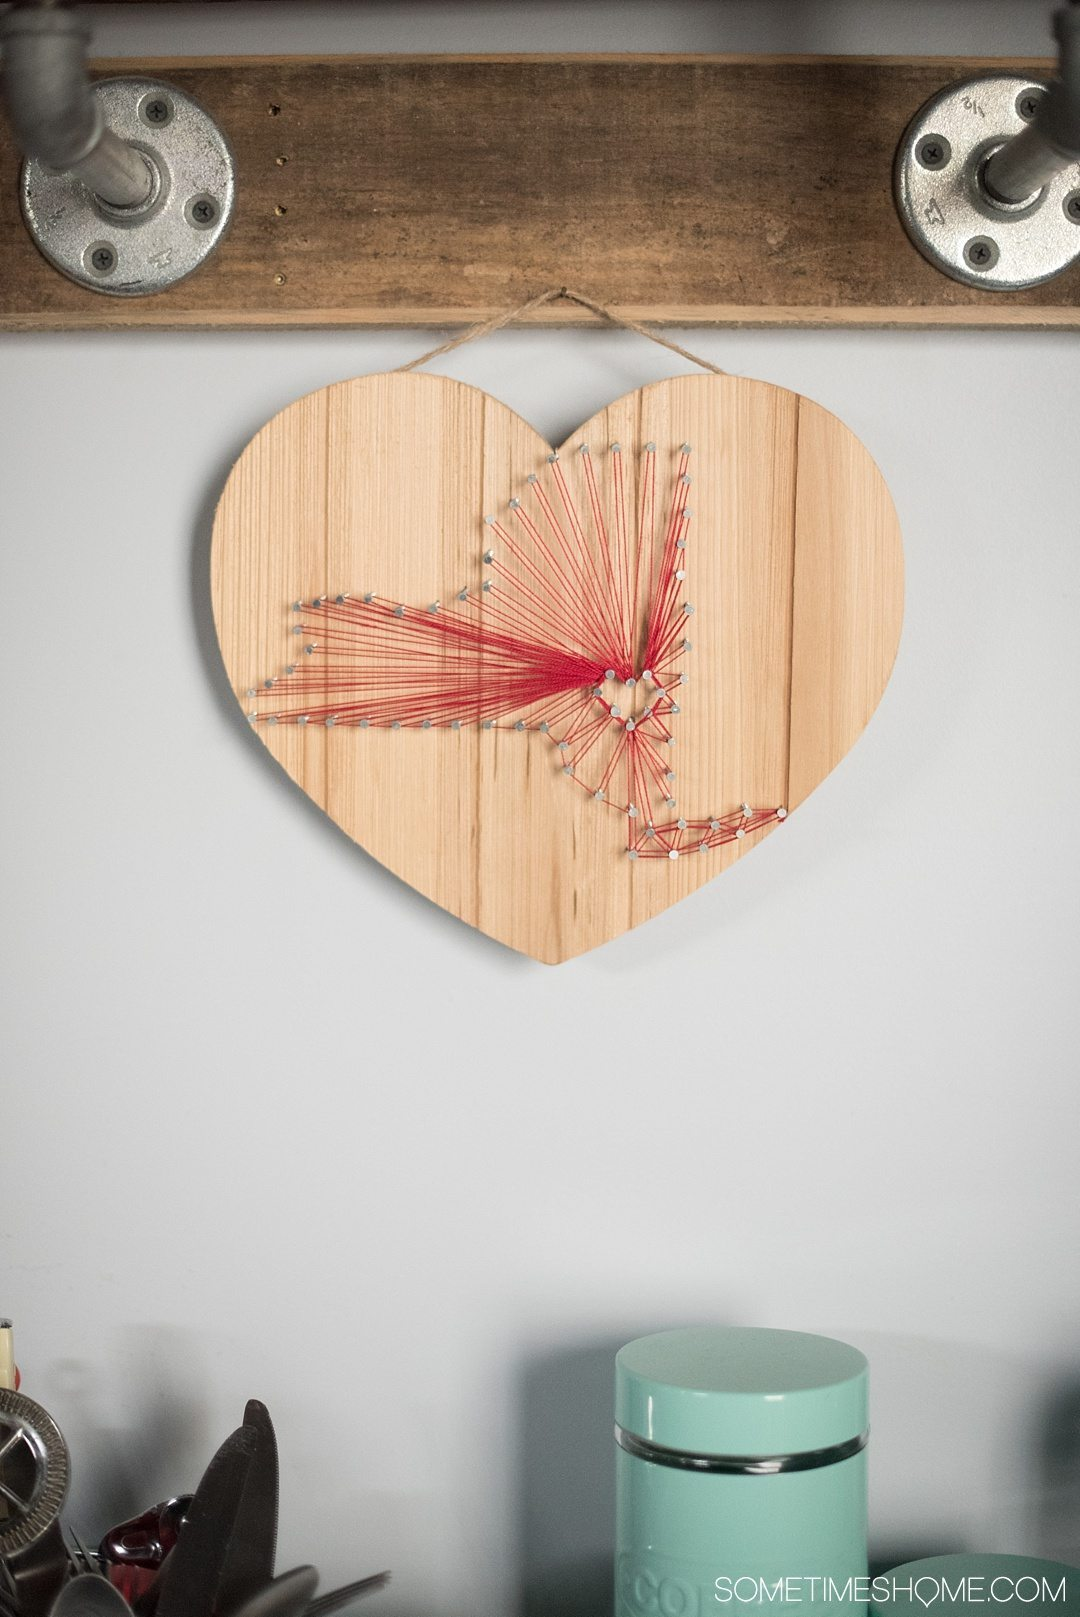 Your Complete Guide to Saugerties, New York on Sometimes Home travel blog. Photo of a heart with strings to form NY state in the Air BnB.